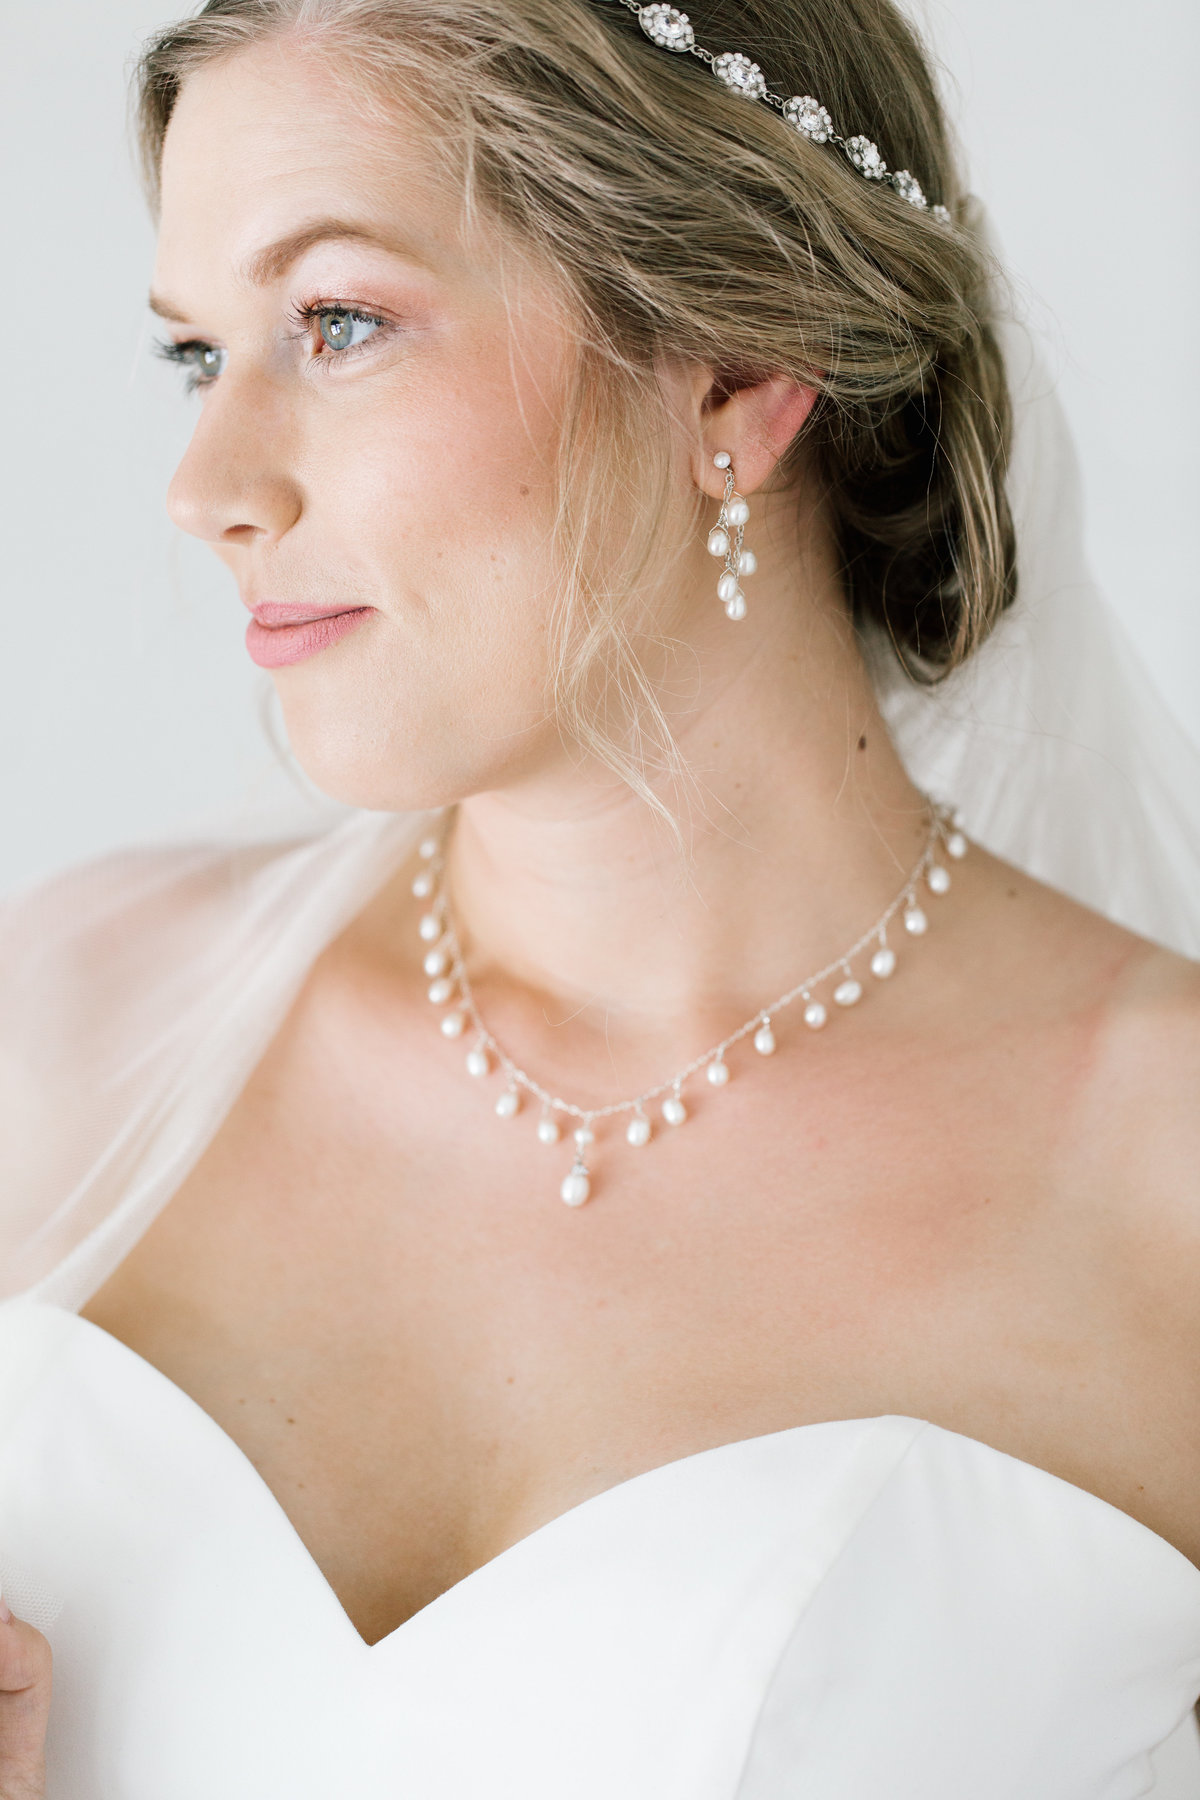 bride wearing necklace and earrings